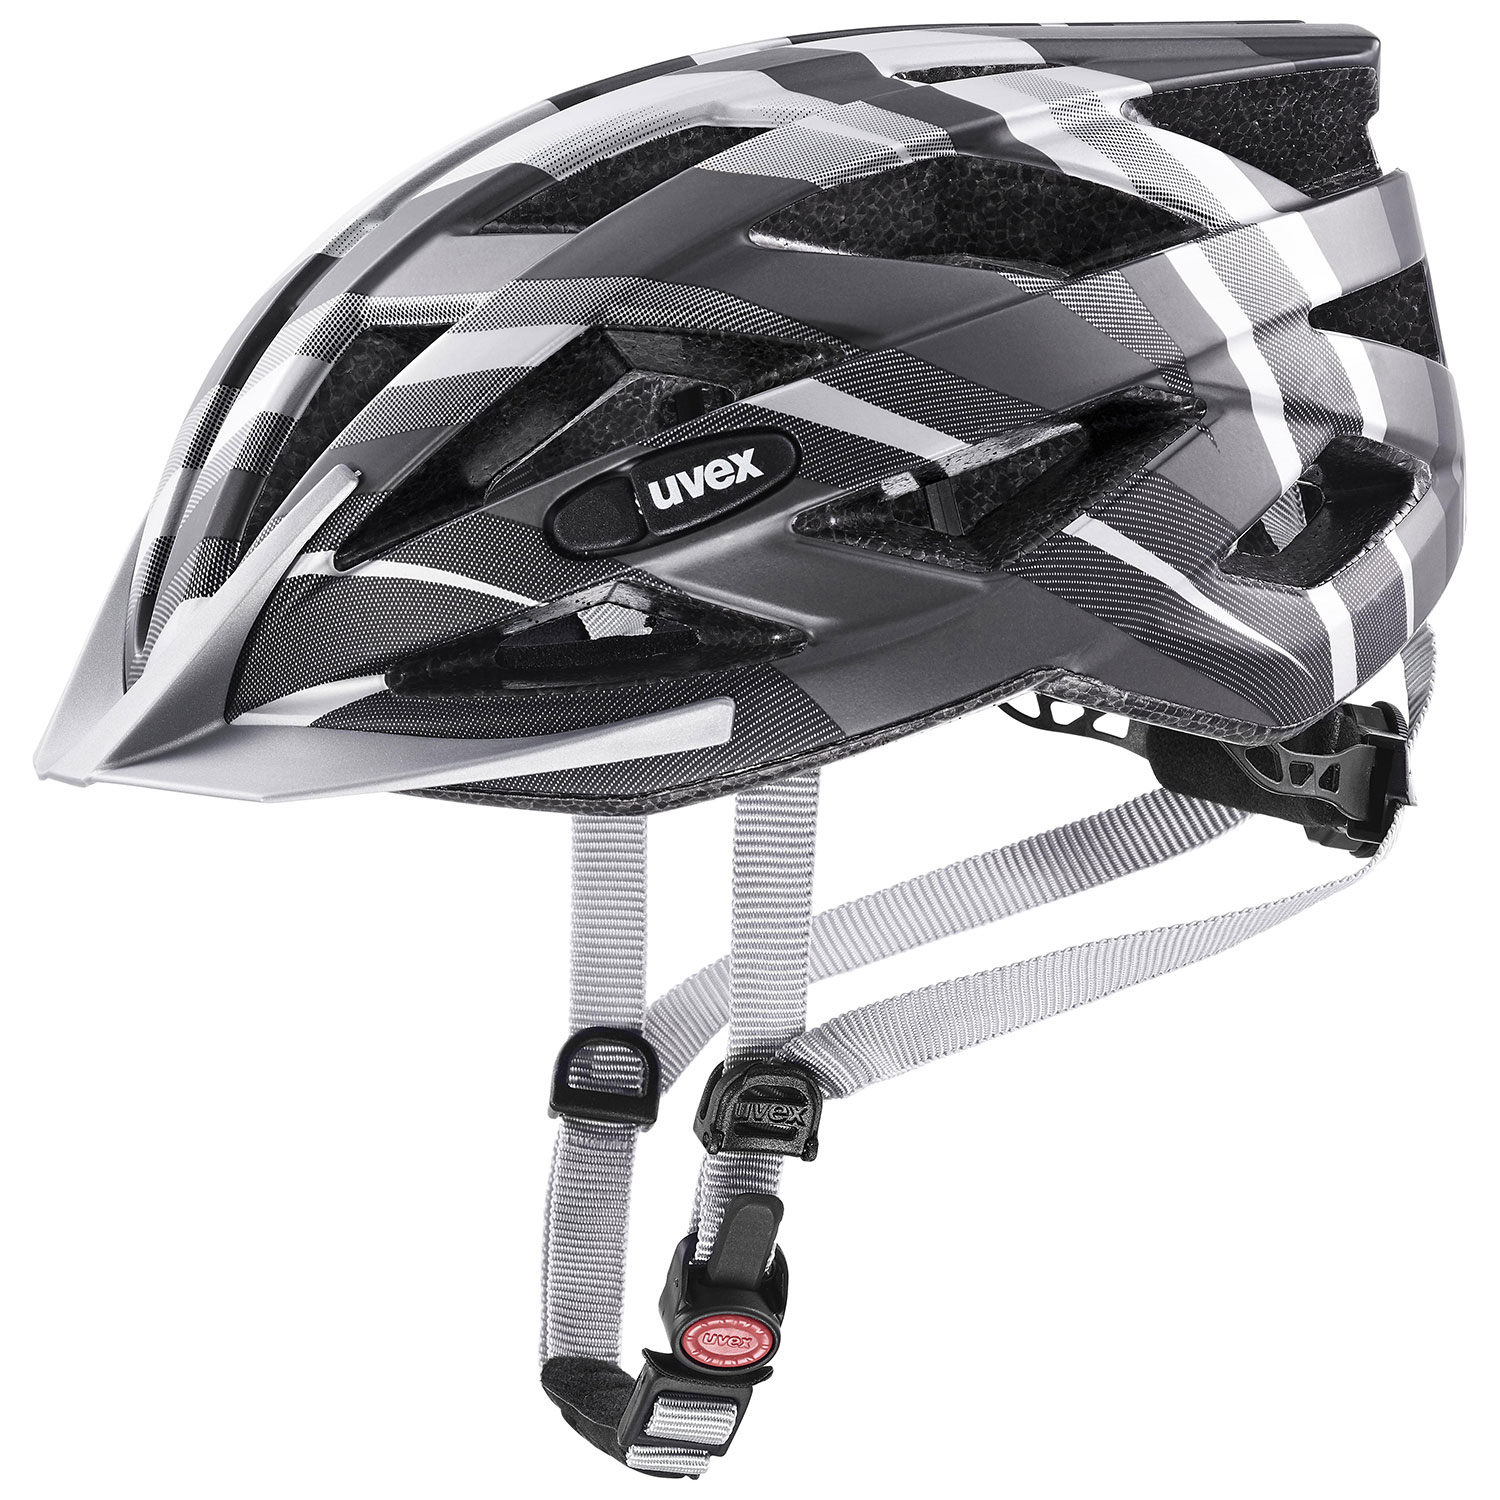 2021 UVEX HELMA AIR WING CC, BLACK - SILVER MAT 56-60